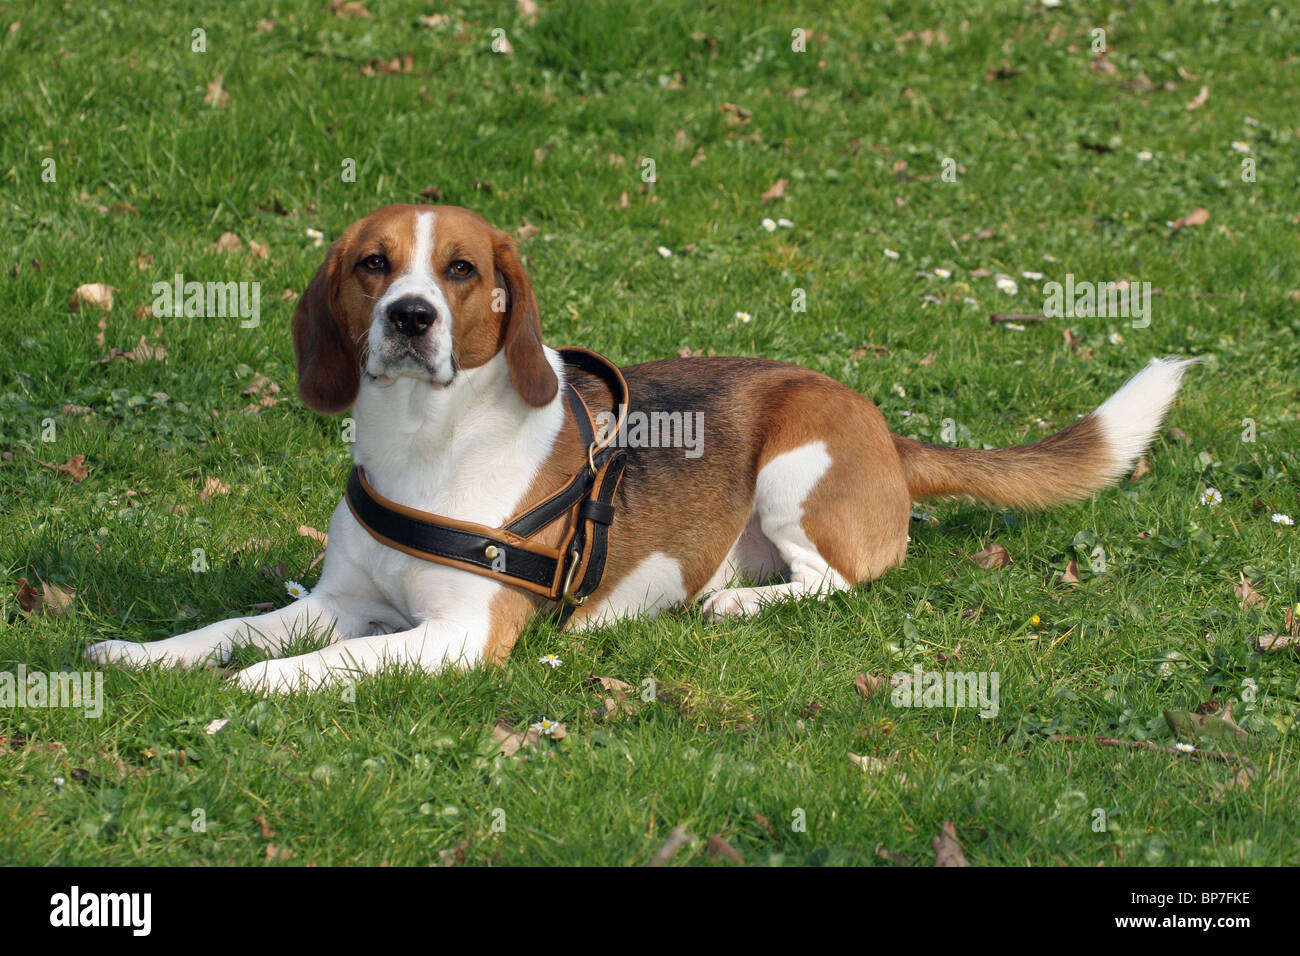 Beagle (Canis lupus familiaris) wearing a harness while lying on a lawn in an urban park. - Stock Image